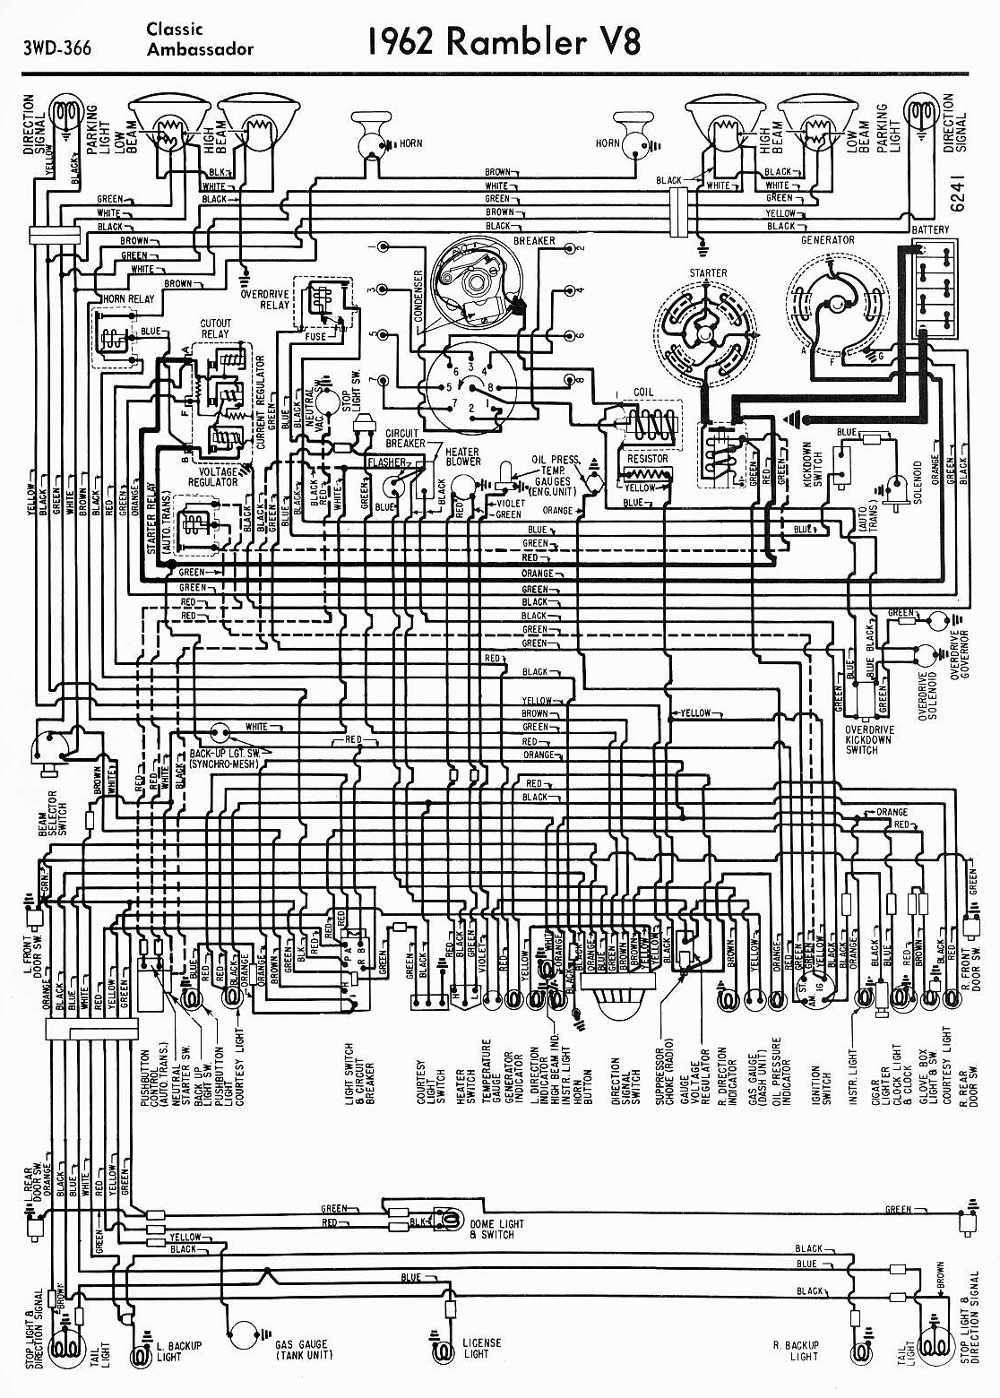 wiring diagrams of 1962 AMC rambler v8 classic and ambassador?t=1507803649 amc car manuals, wiring diagrams pdf & fault codes AMC Ambassador at creativeand.co